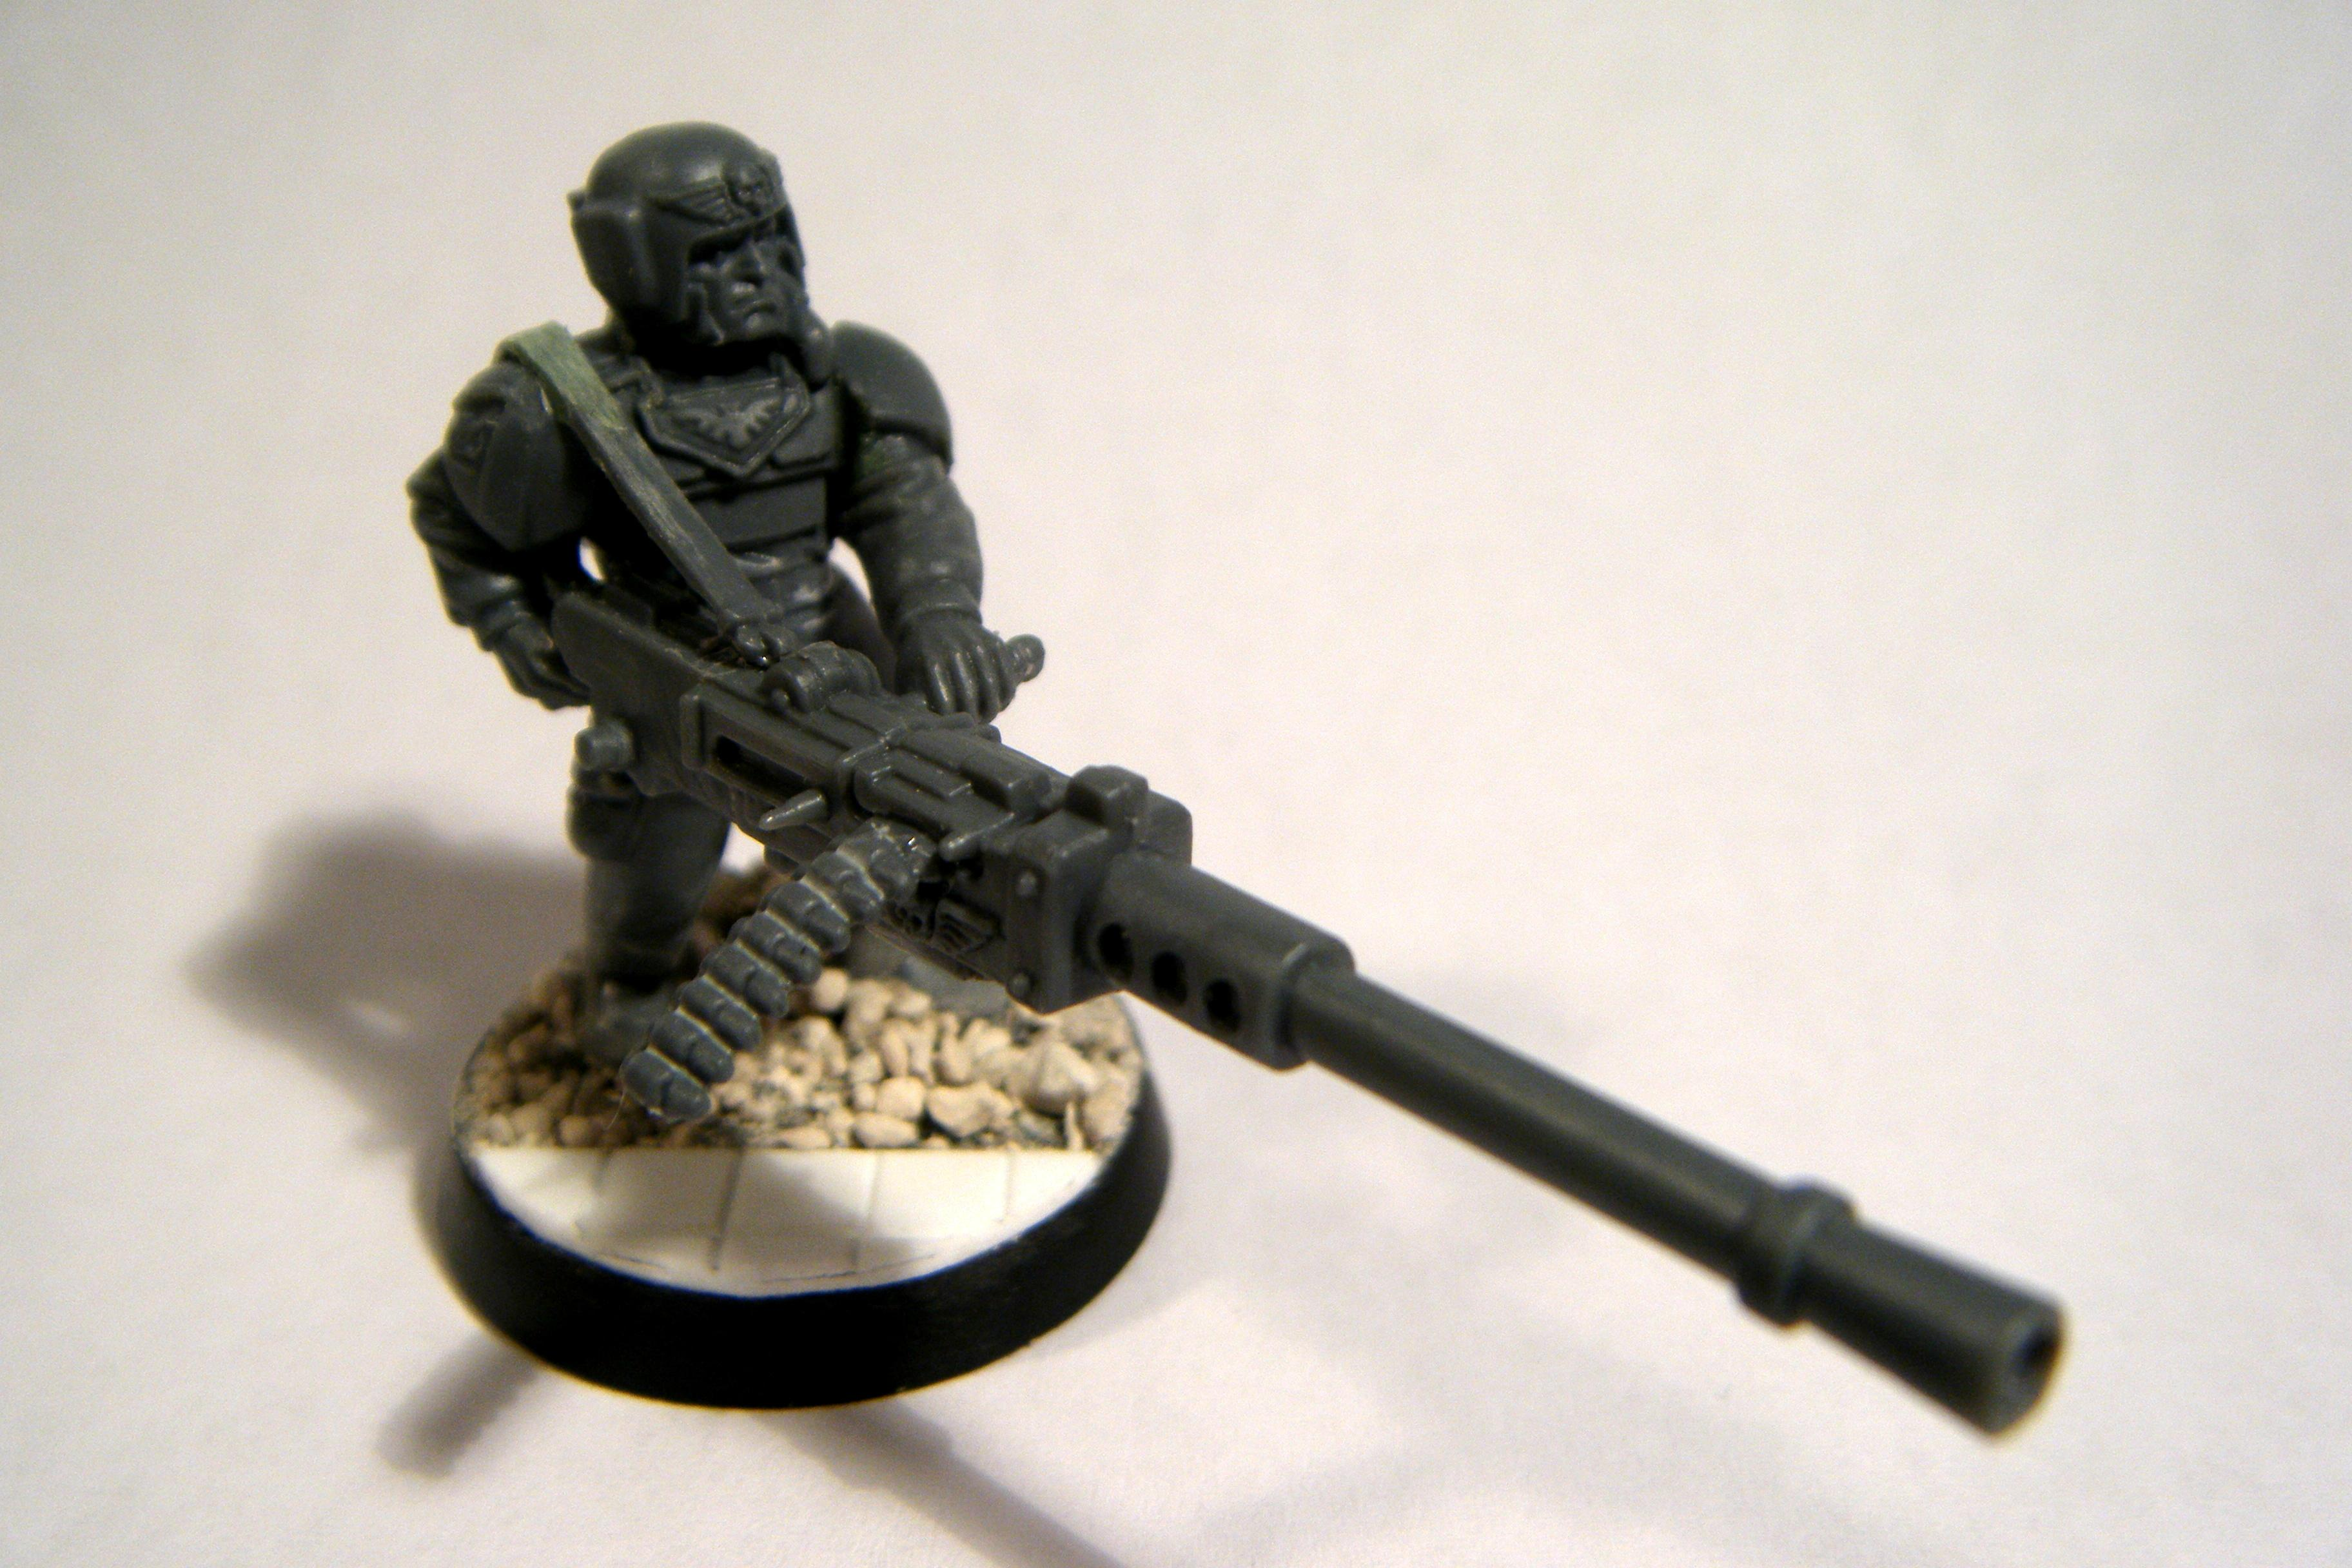 Cadians, Disable, Games Workshop, Heavy Stubber, Imperial Guard, Necromunda, Warhammer 40,000, Work In Progress